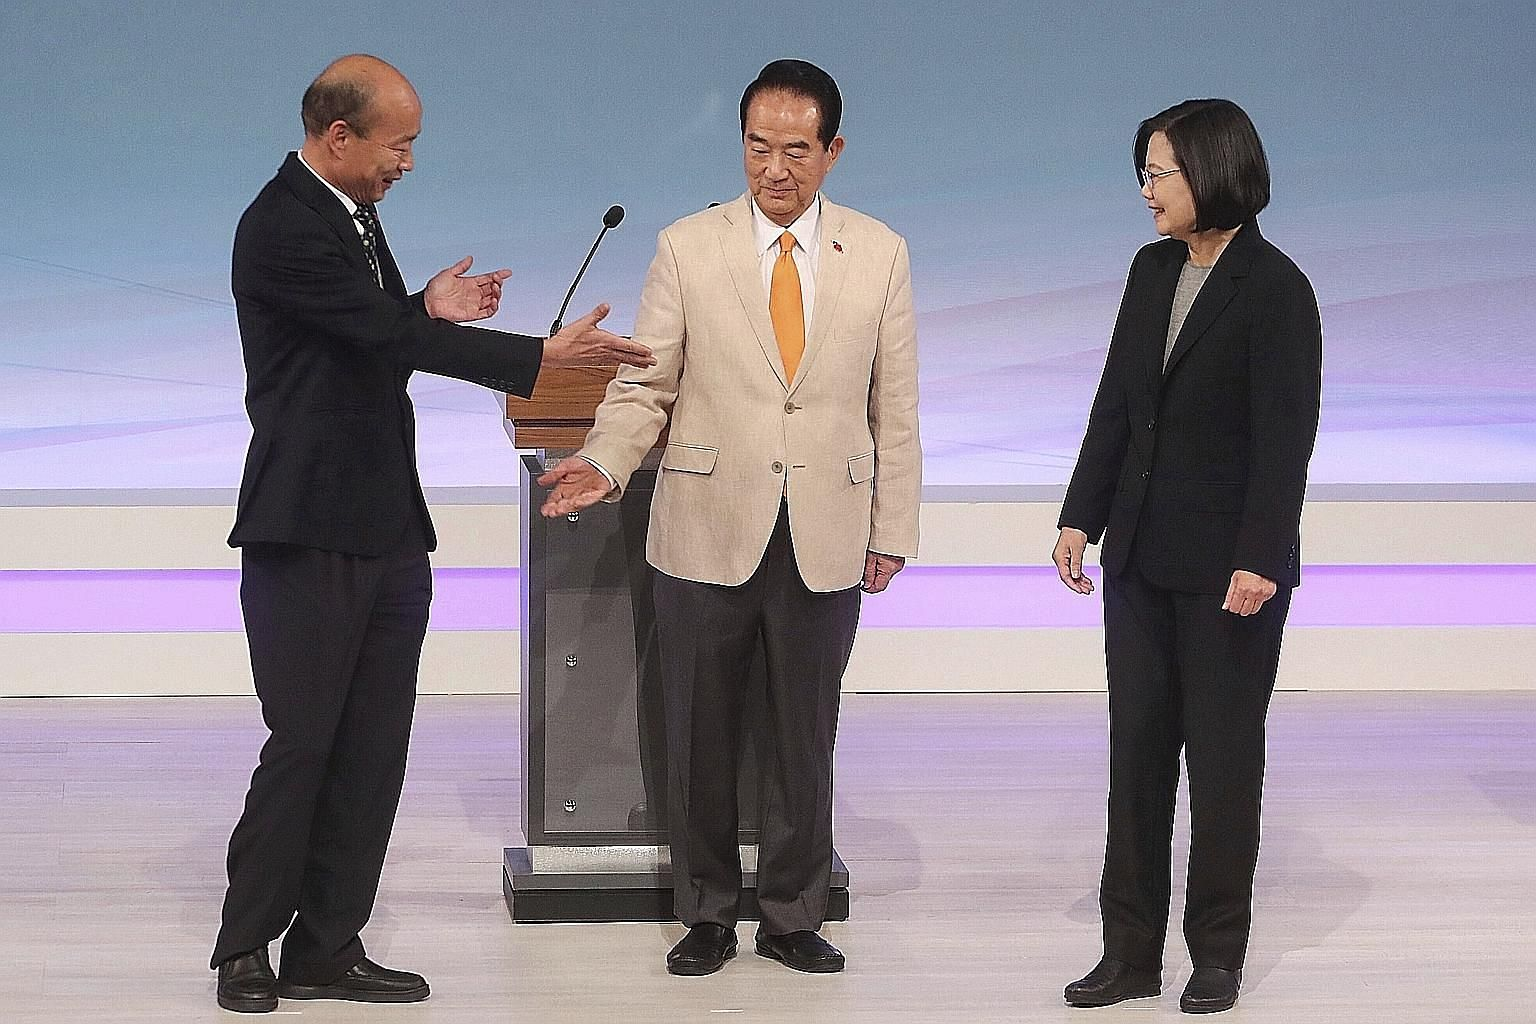 From left: Mr Han Kuo-yu from the Kuomintang, People First Party chairman James Soong and President Tsai Ing-wen of the Democratic Progressive Party before the start of their televised debate in Taipei yesterday. Taiwan will hold its general election